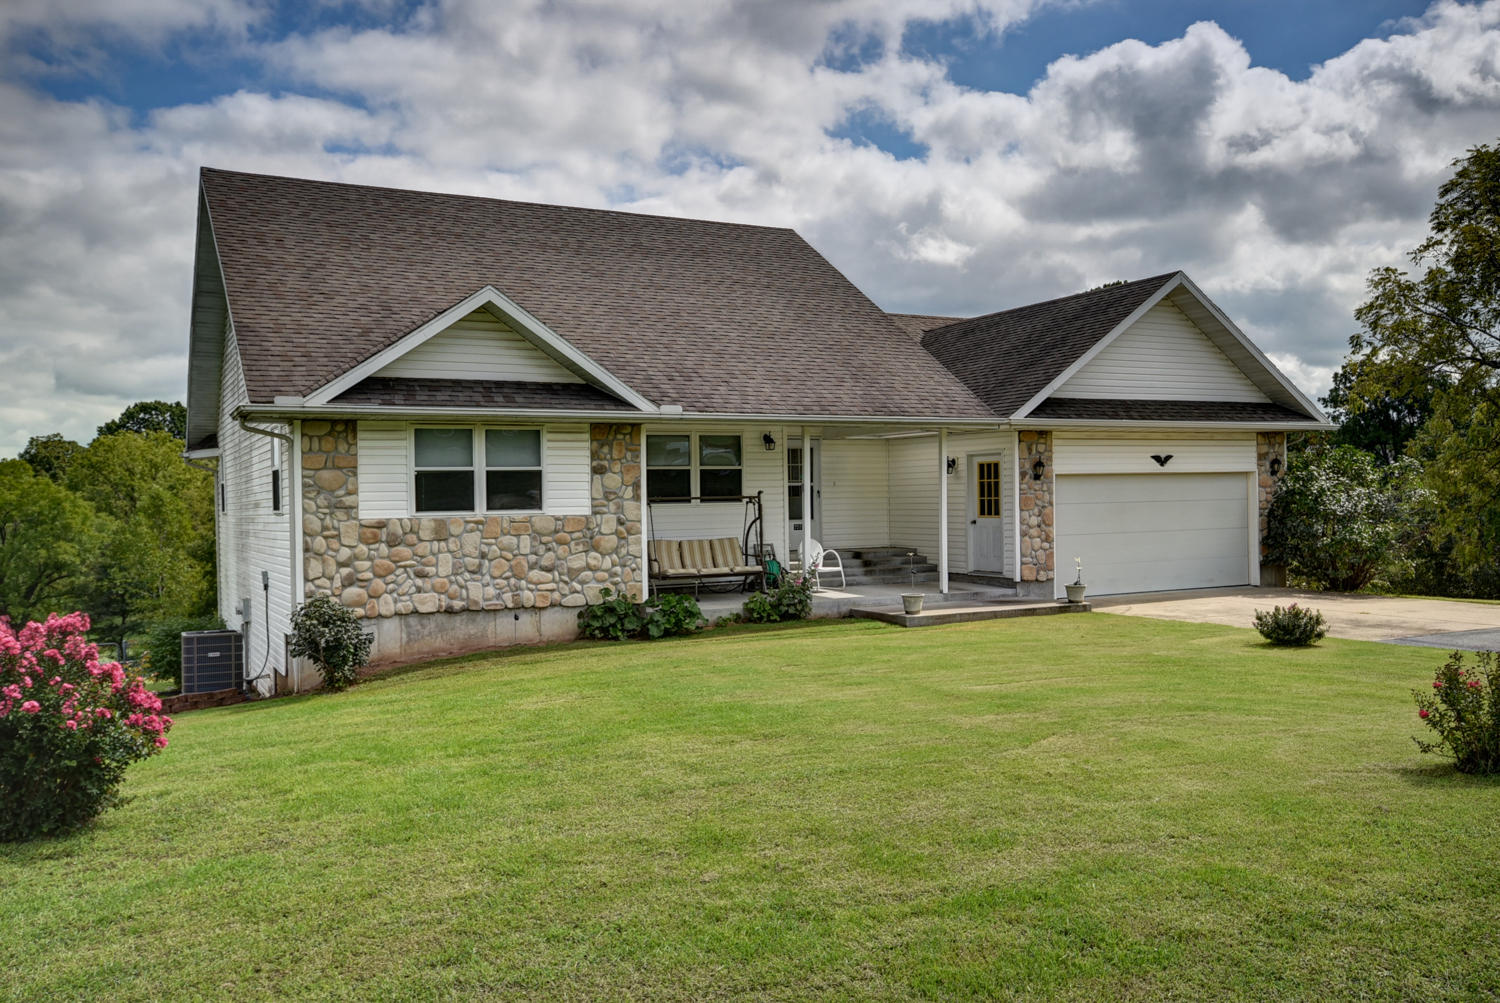 7511 Lawrence 1202 Ash Grove, MO 65604